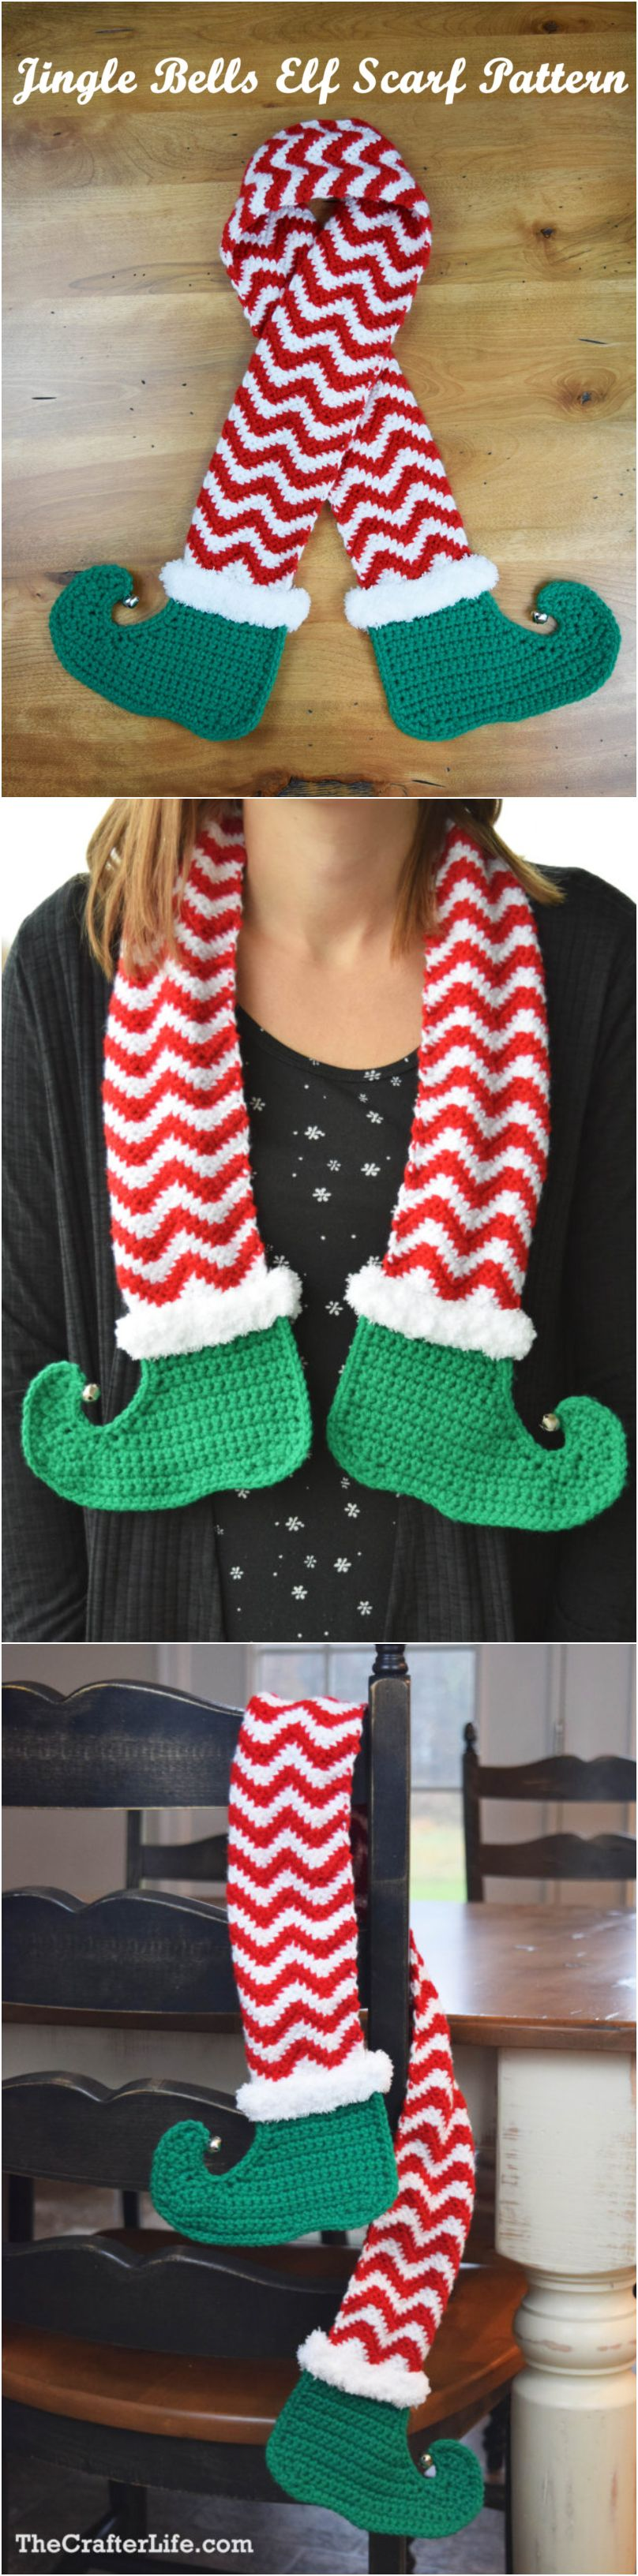 Crochet Jingle Bells Elf Scarf - Pretty Ideas